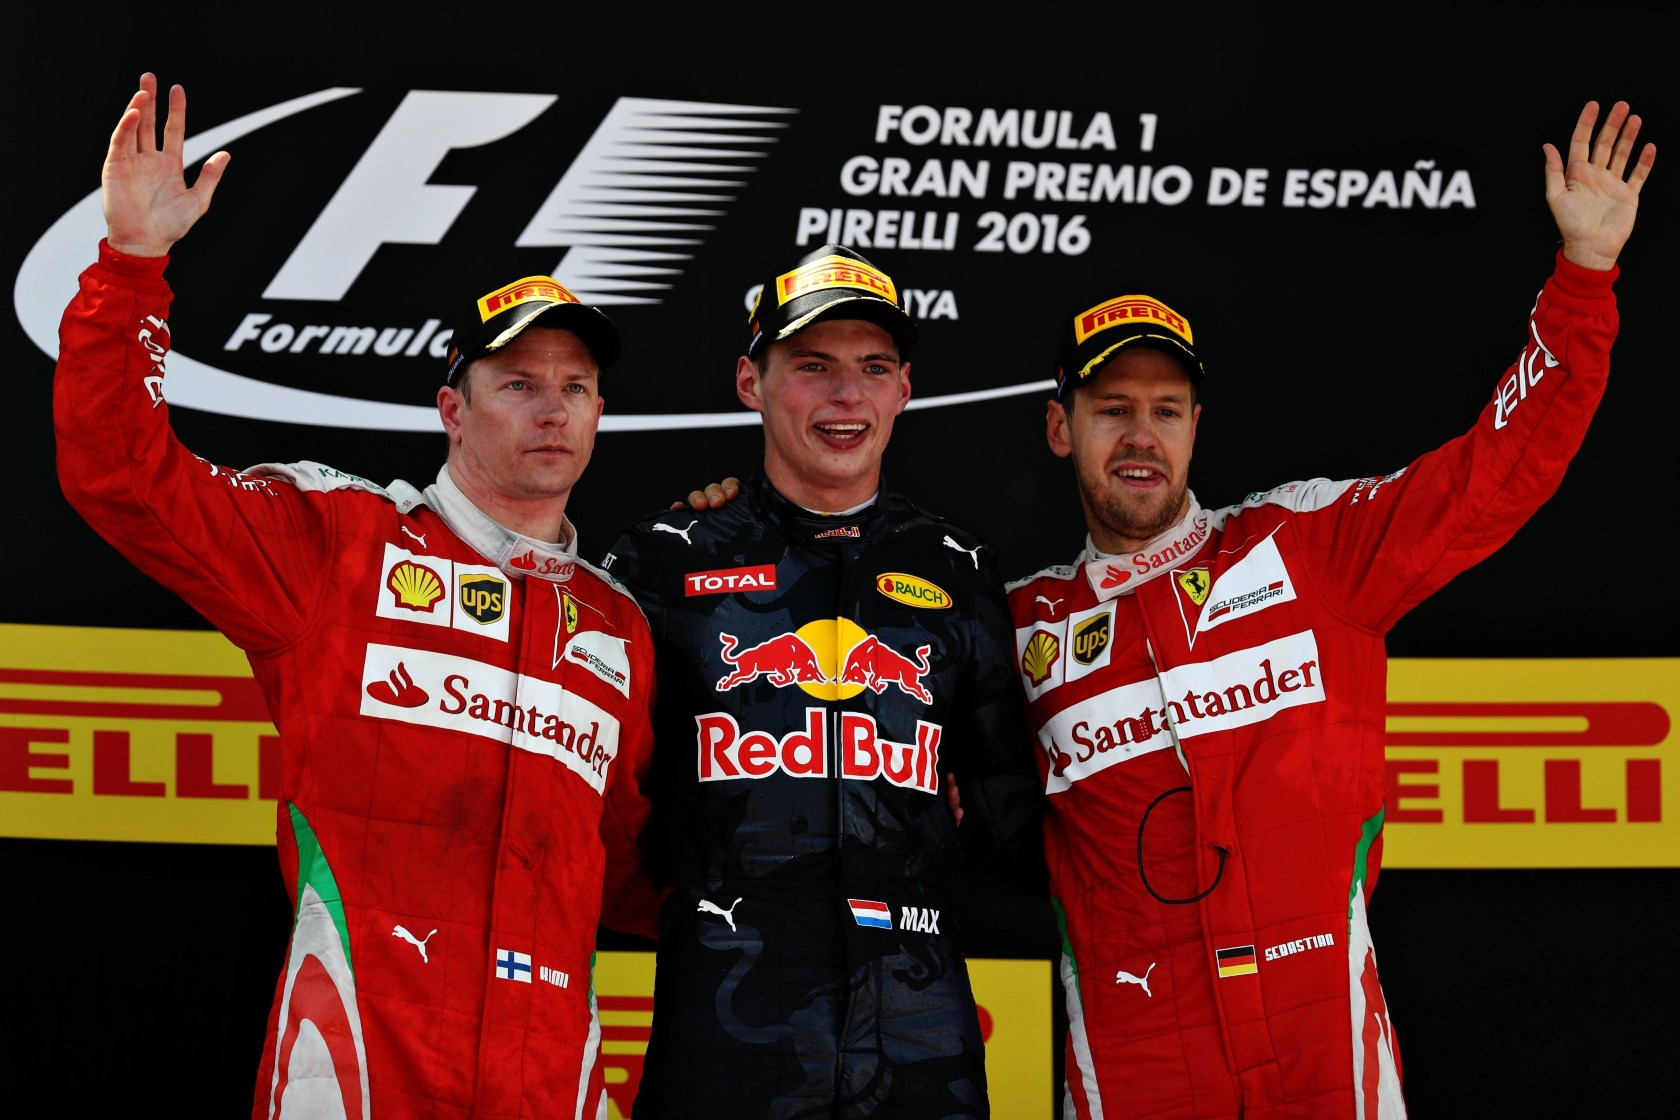 Max Verstappen Red Bull TAG Heuer RB12 on podium with Raikkonen and Vettel Spain GP F1 2016 Foto Red Bull